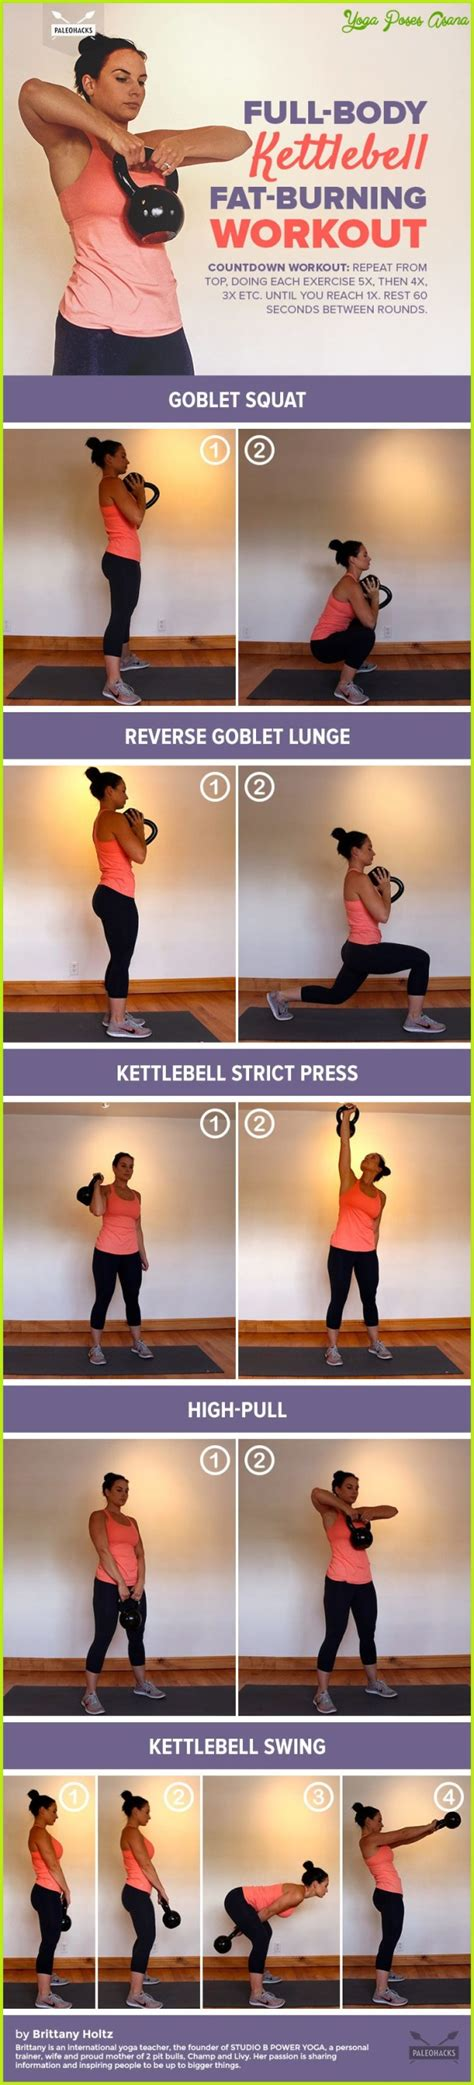 kettlebell body upper exercises workout burning fat yogaposesasana substances